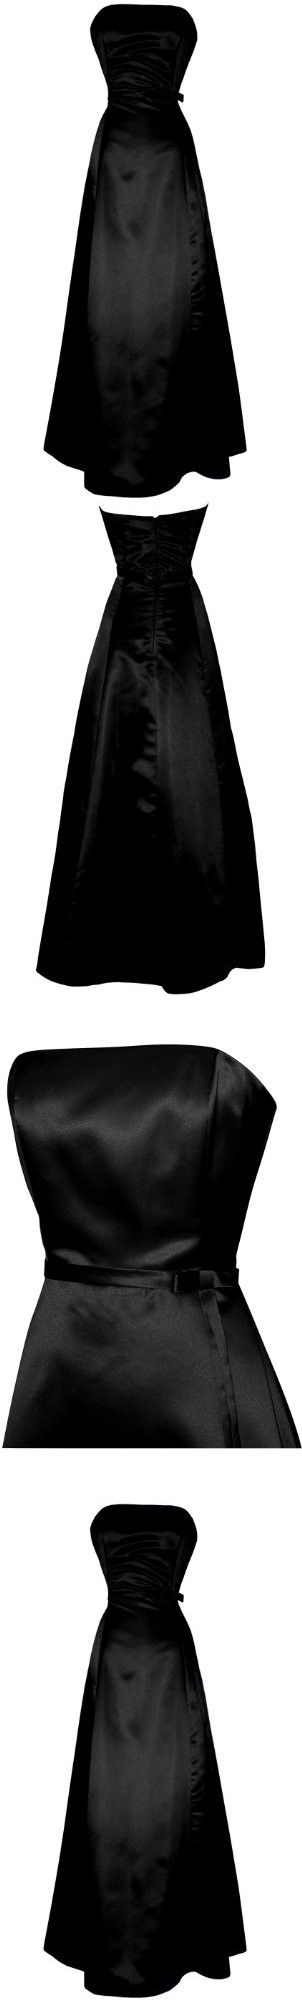 50's Strapless Satin Long Gown Bridesmaid Prom Dress Holiday Formal Junior Plus Size, 5X, Black